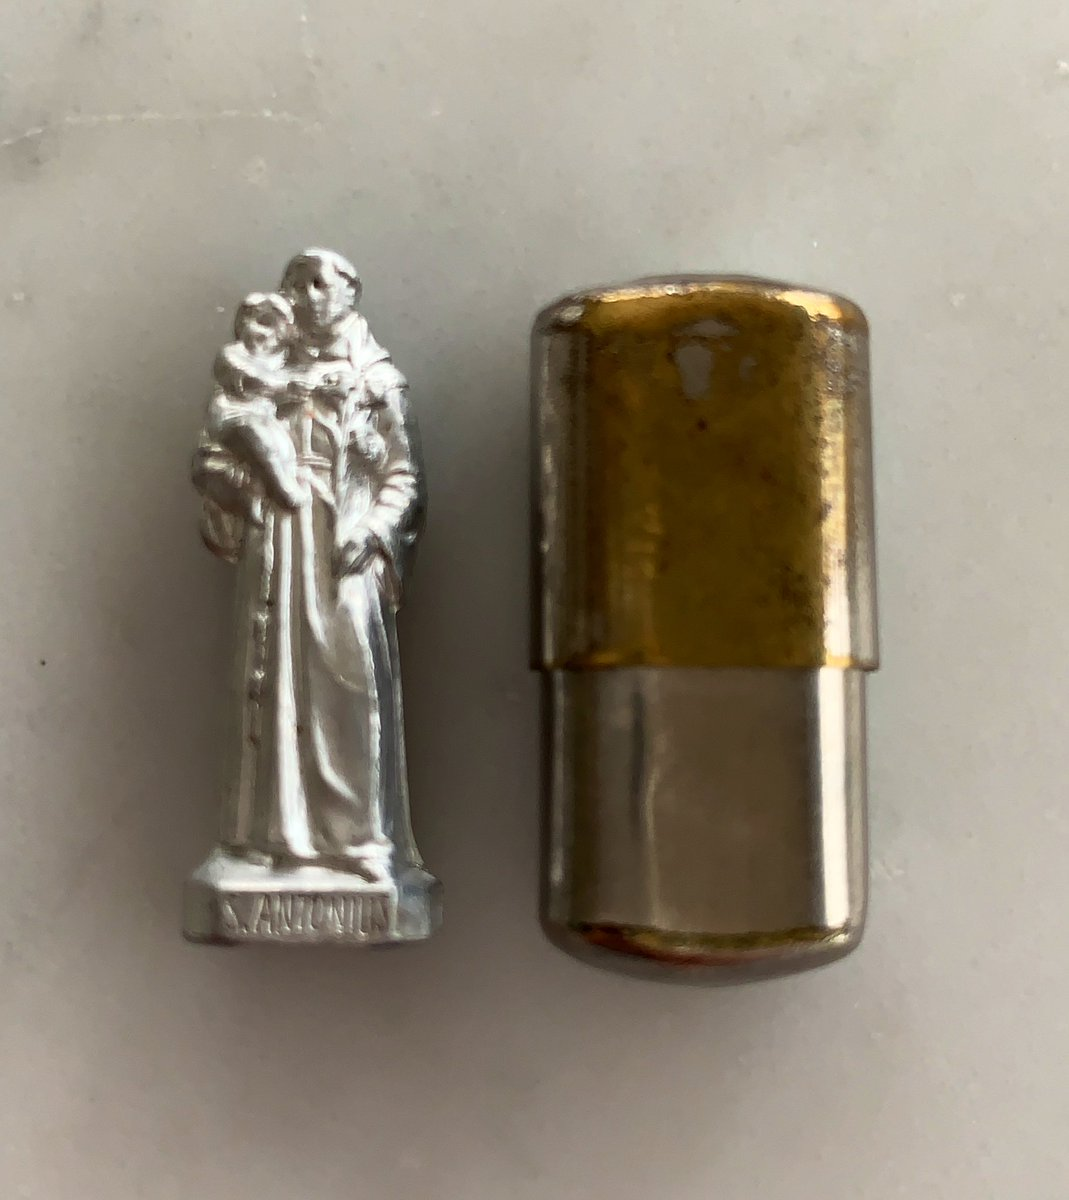 My family was decimated by the holocaust, experimented on & murdered at #Auschwitz   My grandma hid & survived. She carried this token to keep her safe. Anthony, patron saint of lost things & people I carry it with me in my wallet everyday #LestWeForget  #HolocaustRemembranceDay